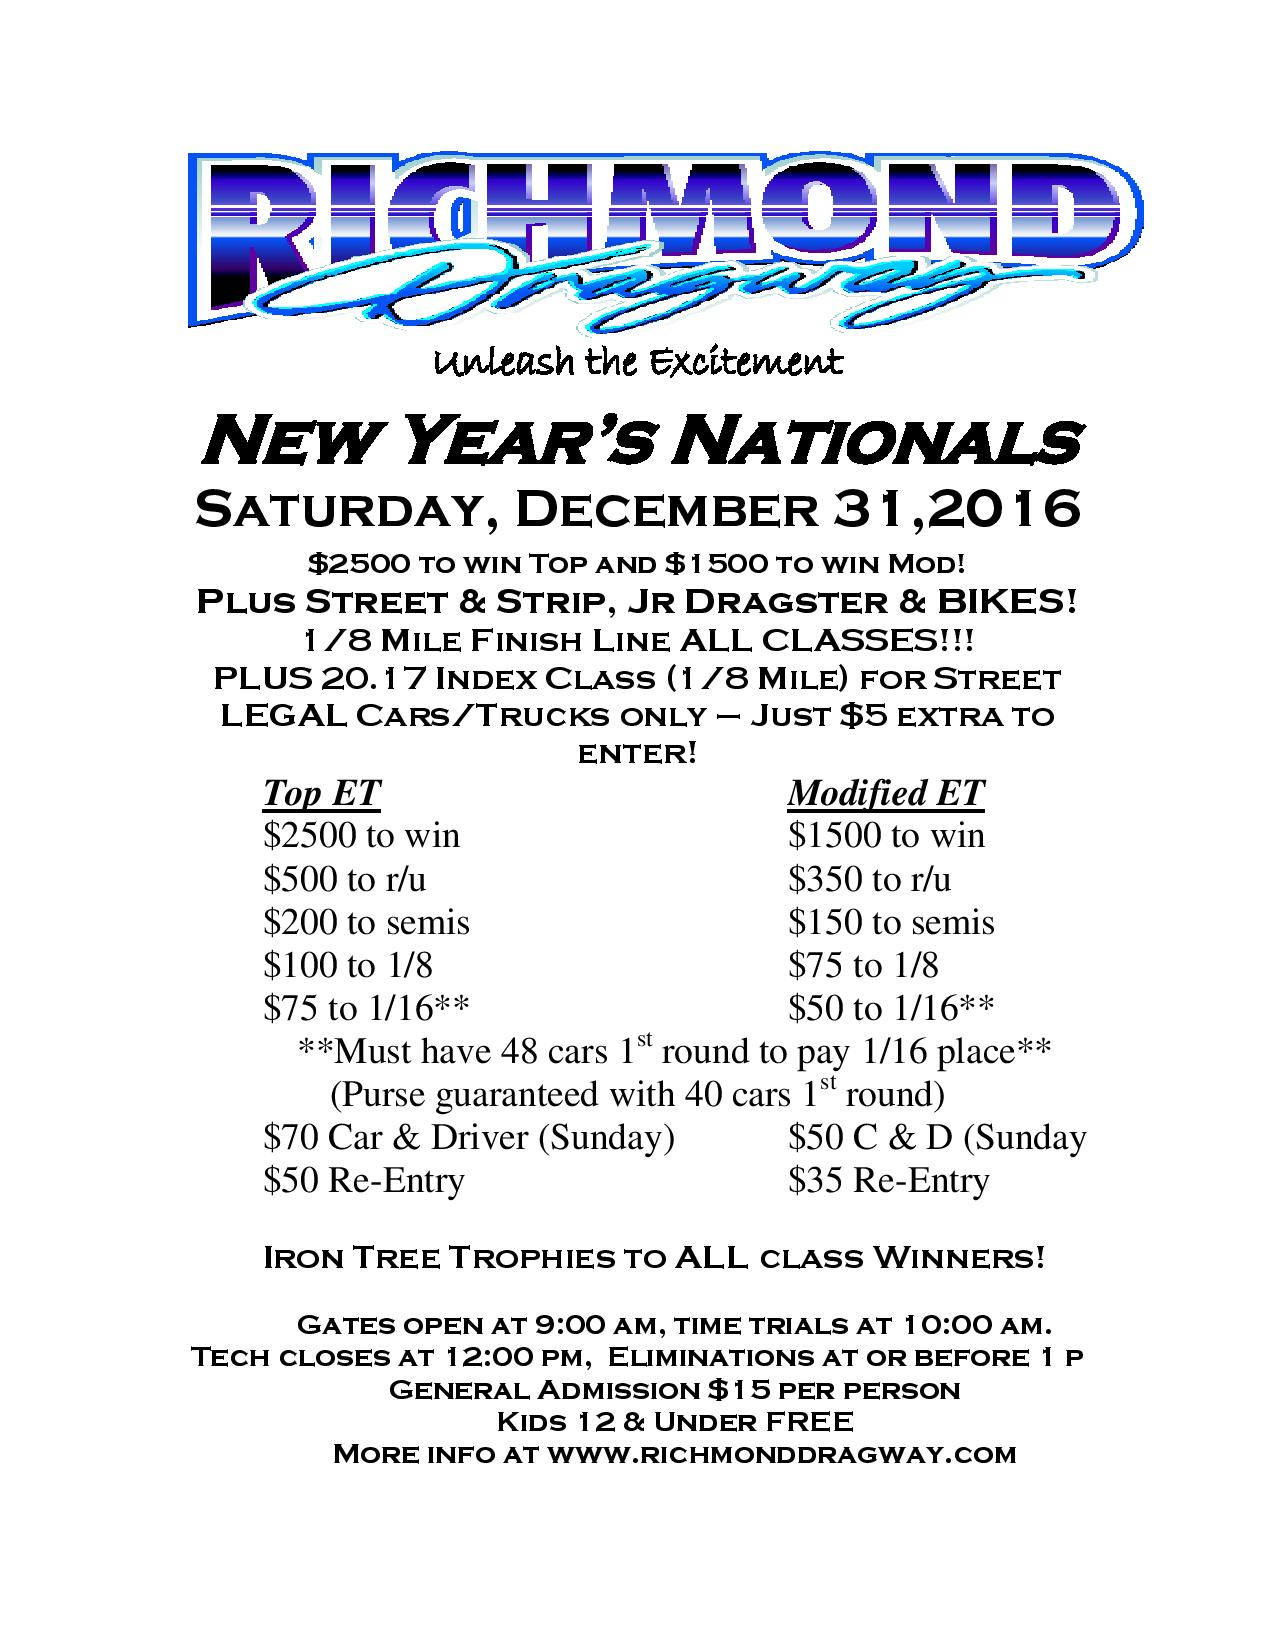 New Year's Nationals-Sat, Dec 31, 2016 thumbnail